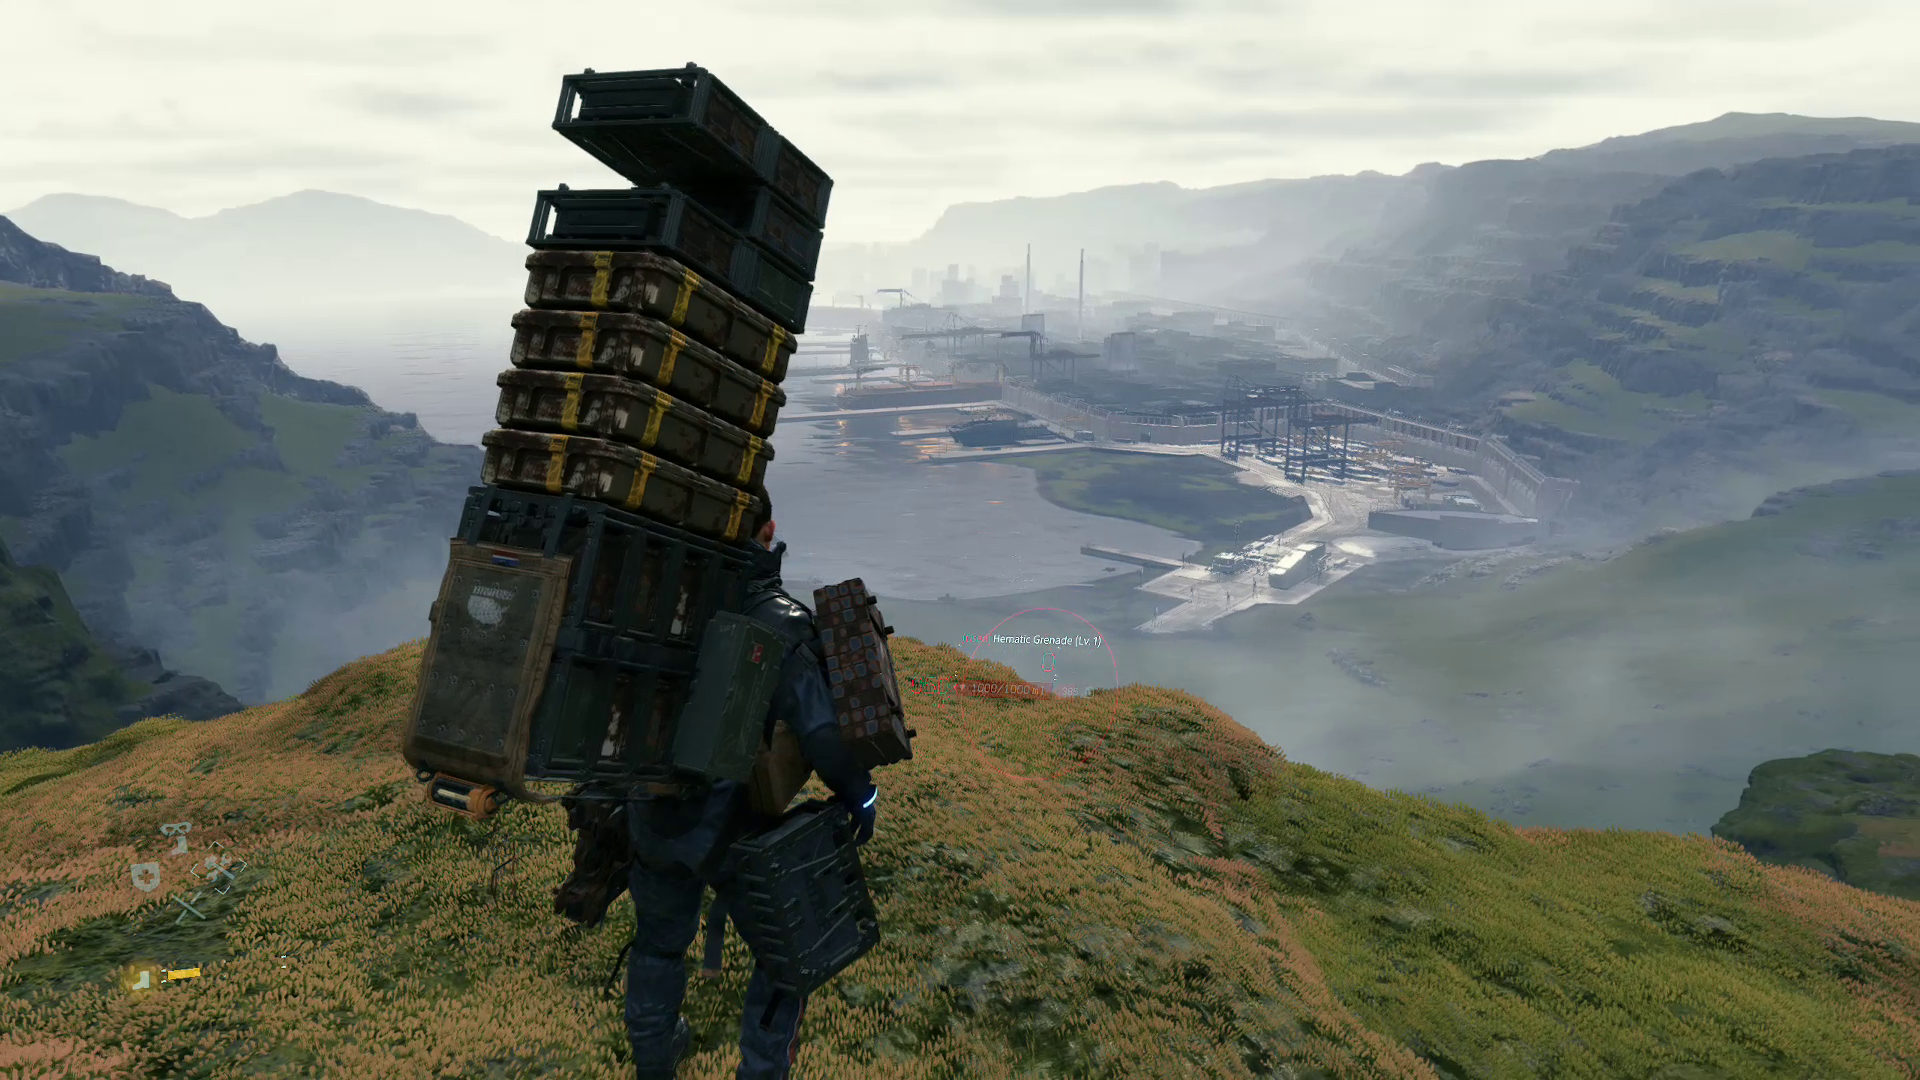 Win an RTX 2080 in our Death Stranding 'Real or Game' photo quiz